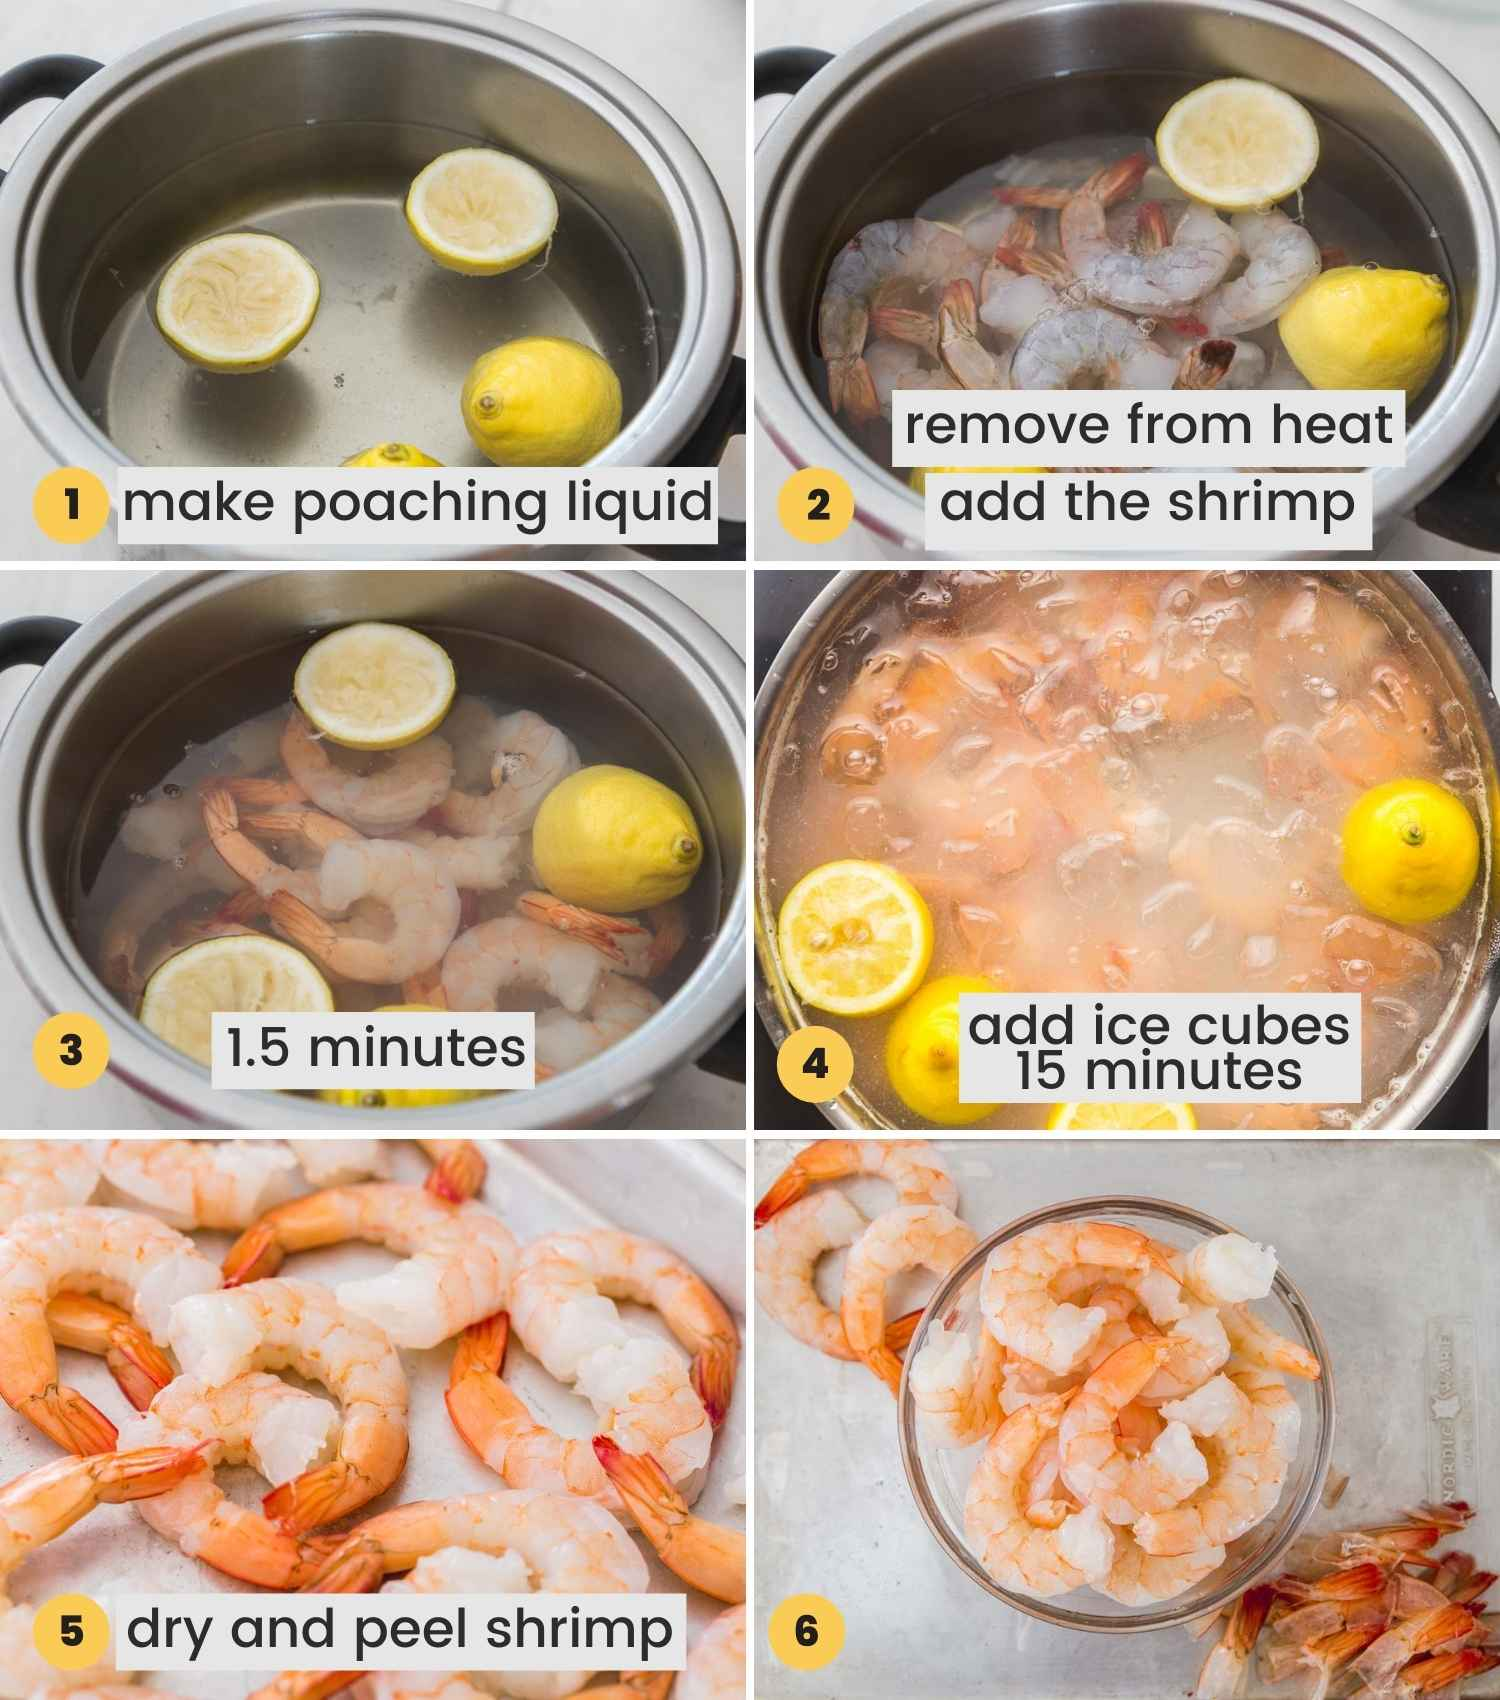 A collage with 6 images showing how to poach shrimp to make ceviche